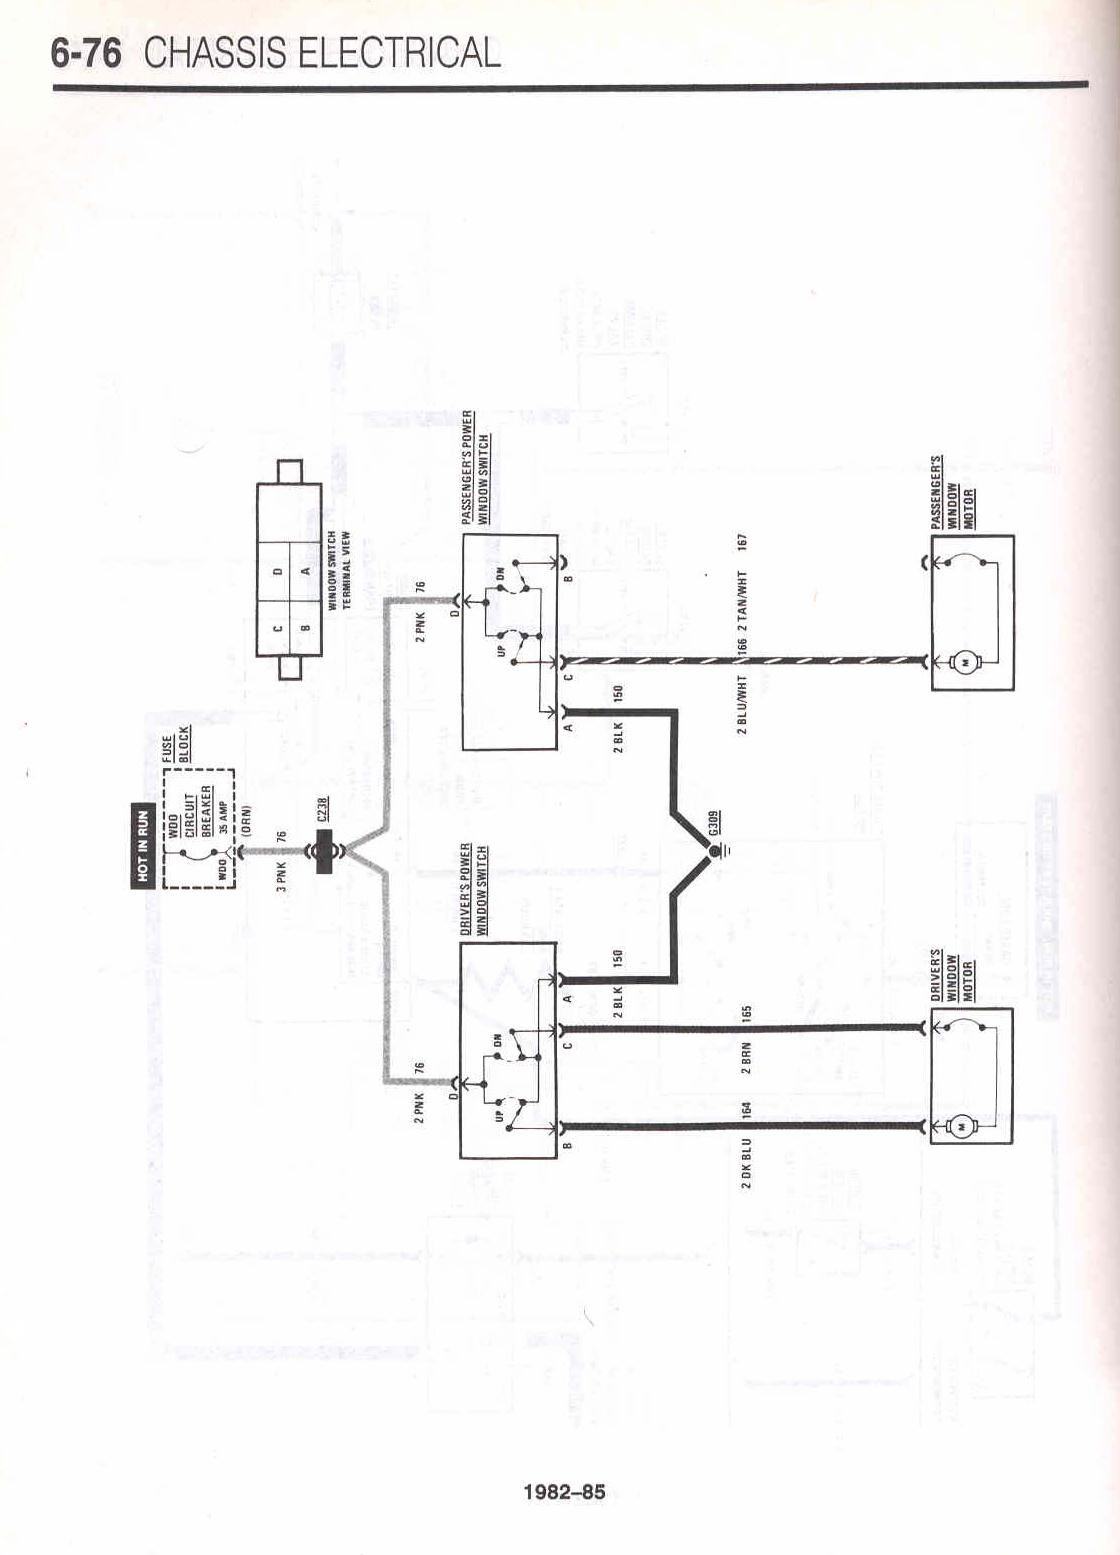 wire diagram 1978 chevy camaro